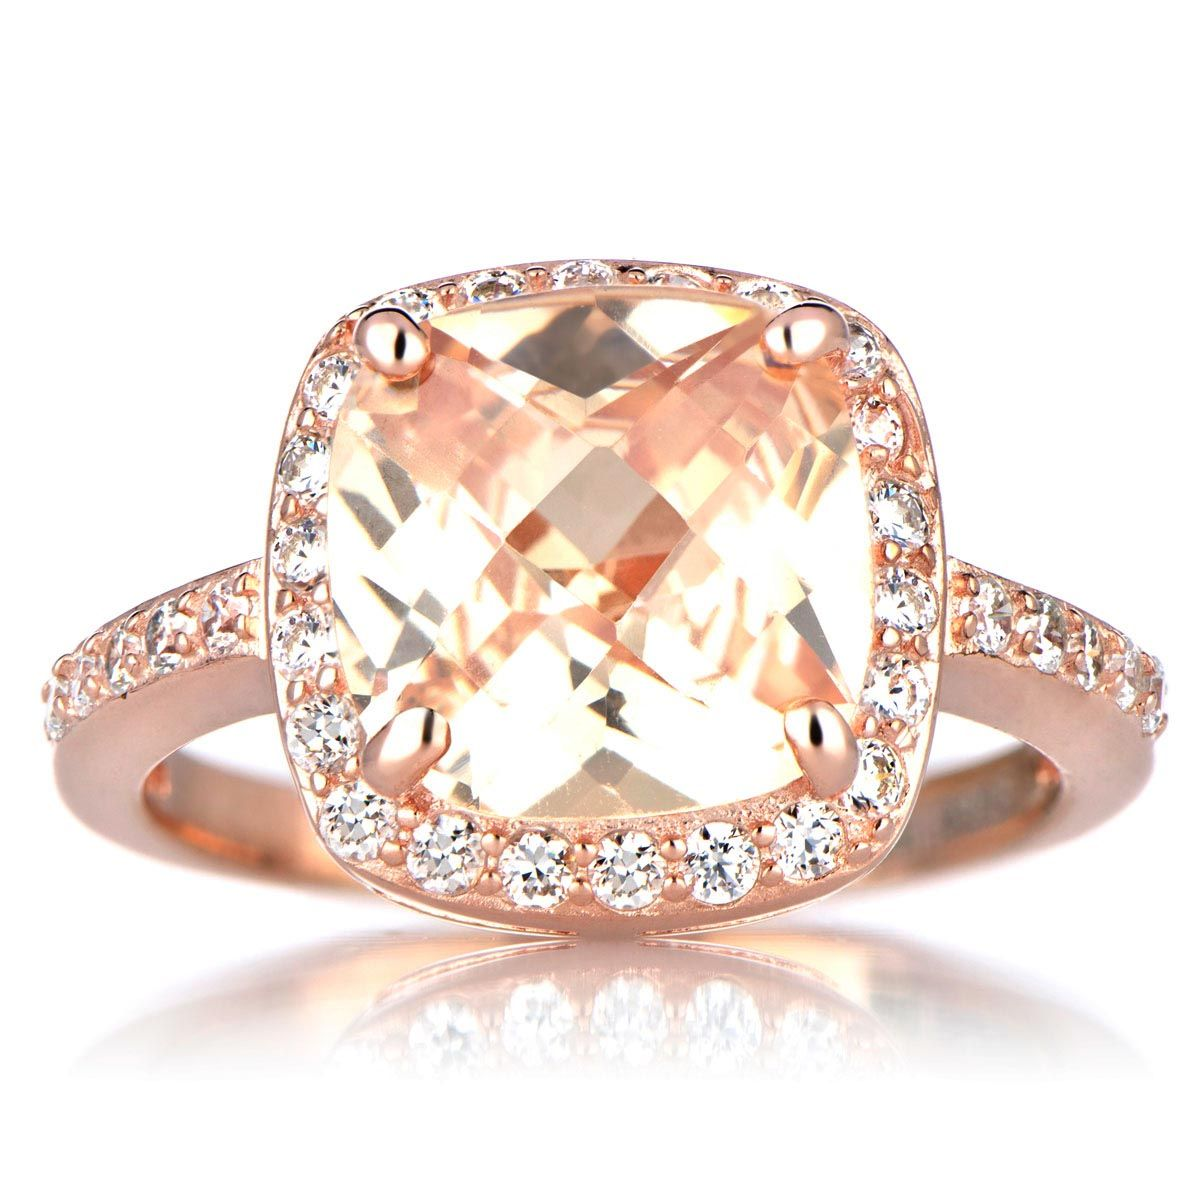 try marinas rose gold cushion cut engagement ring peach cz features a stunning peach cushion cut cz stone - Rose Gold Wedding Rings For Women